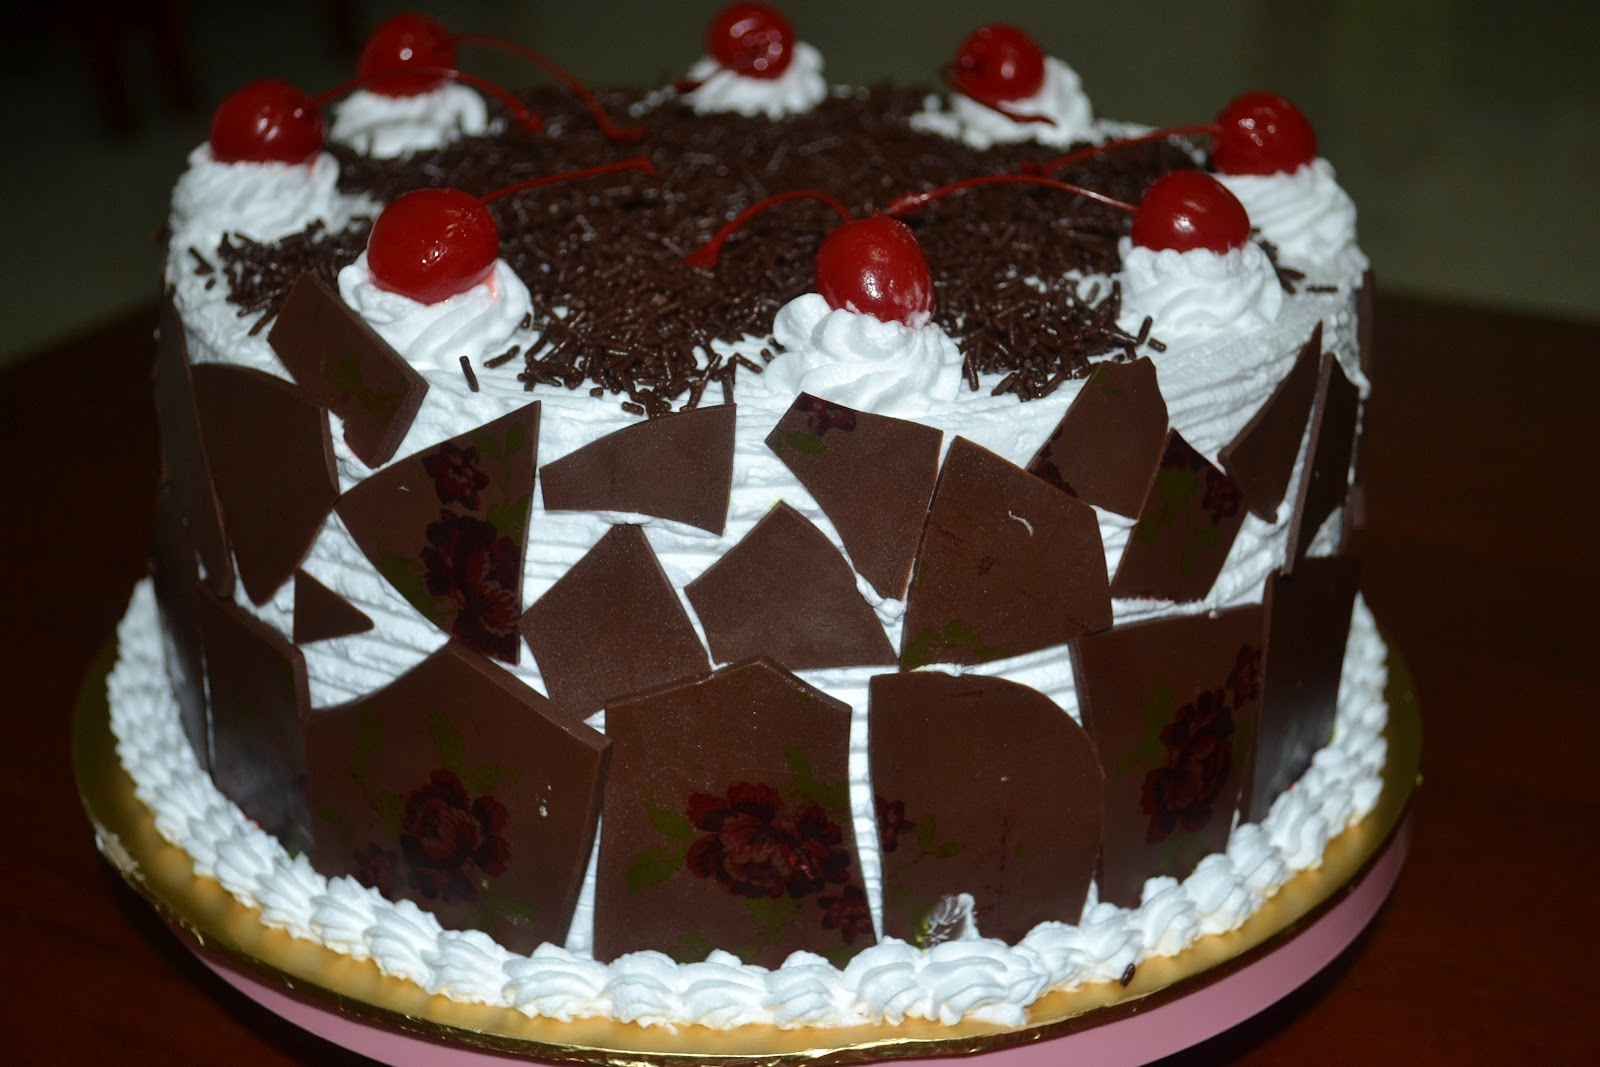 Cake Black Forest Birthday : Cakes, Cakes N more: Black Forest Cake